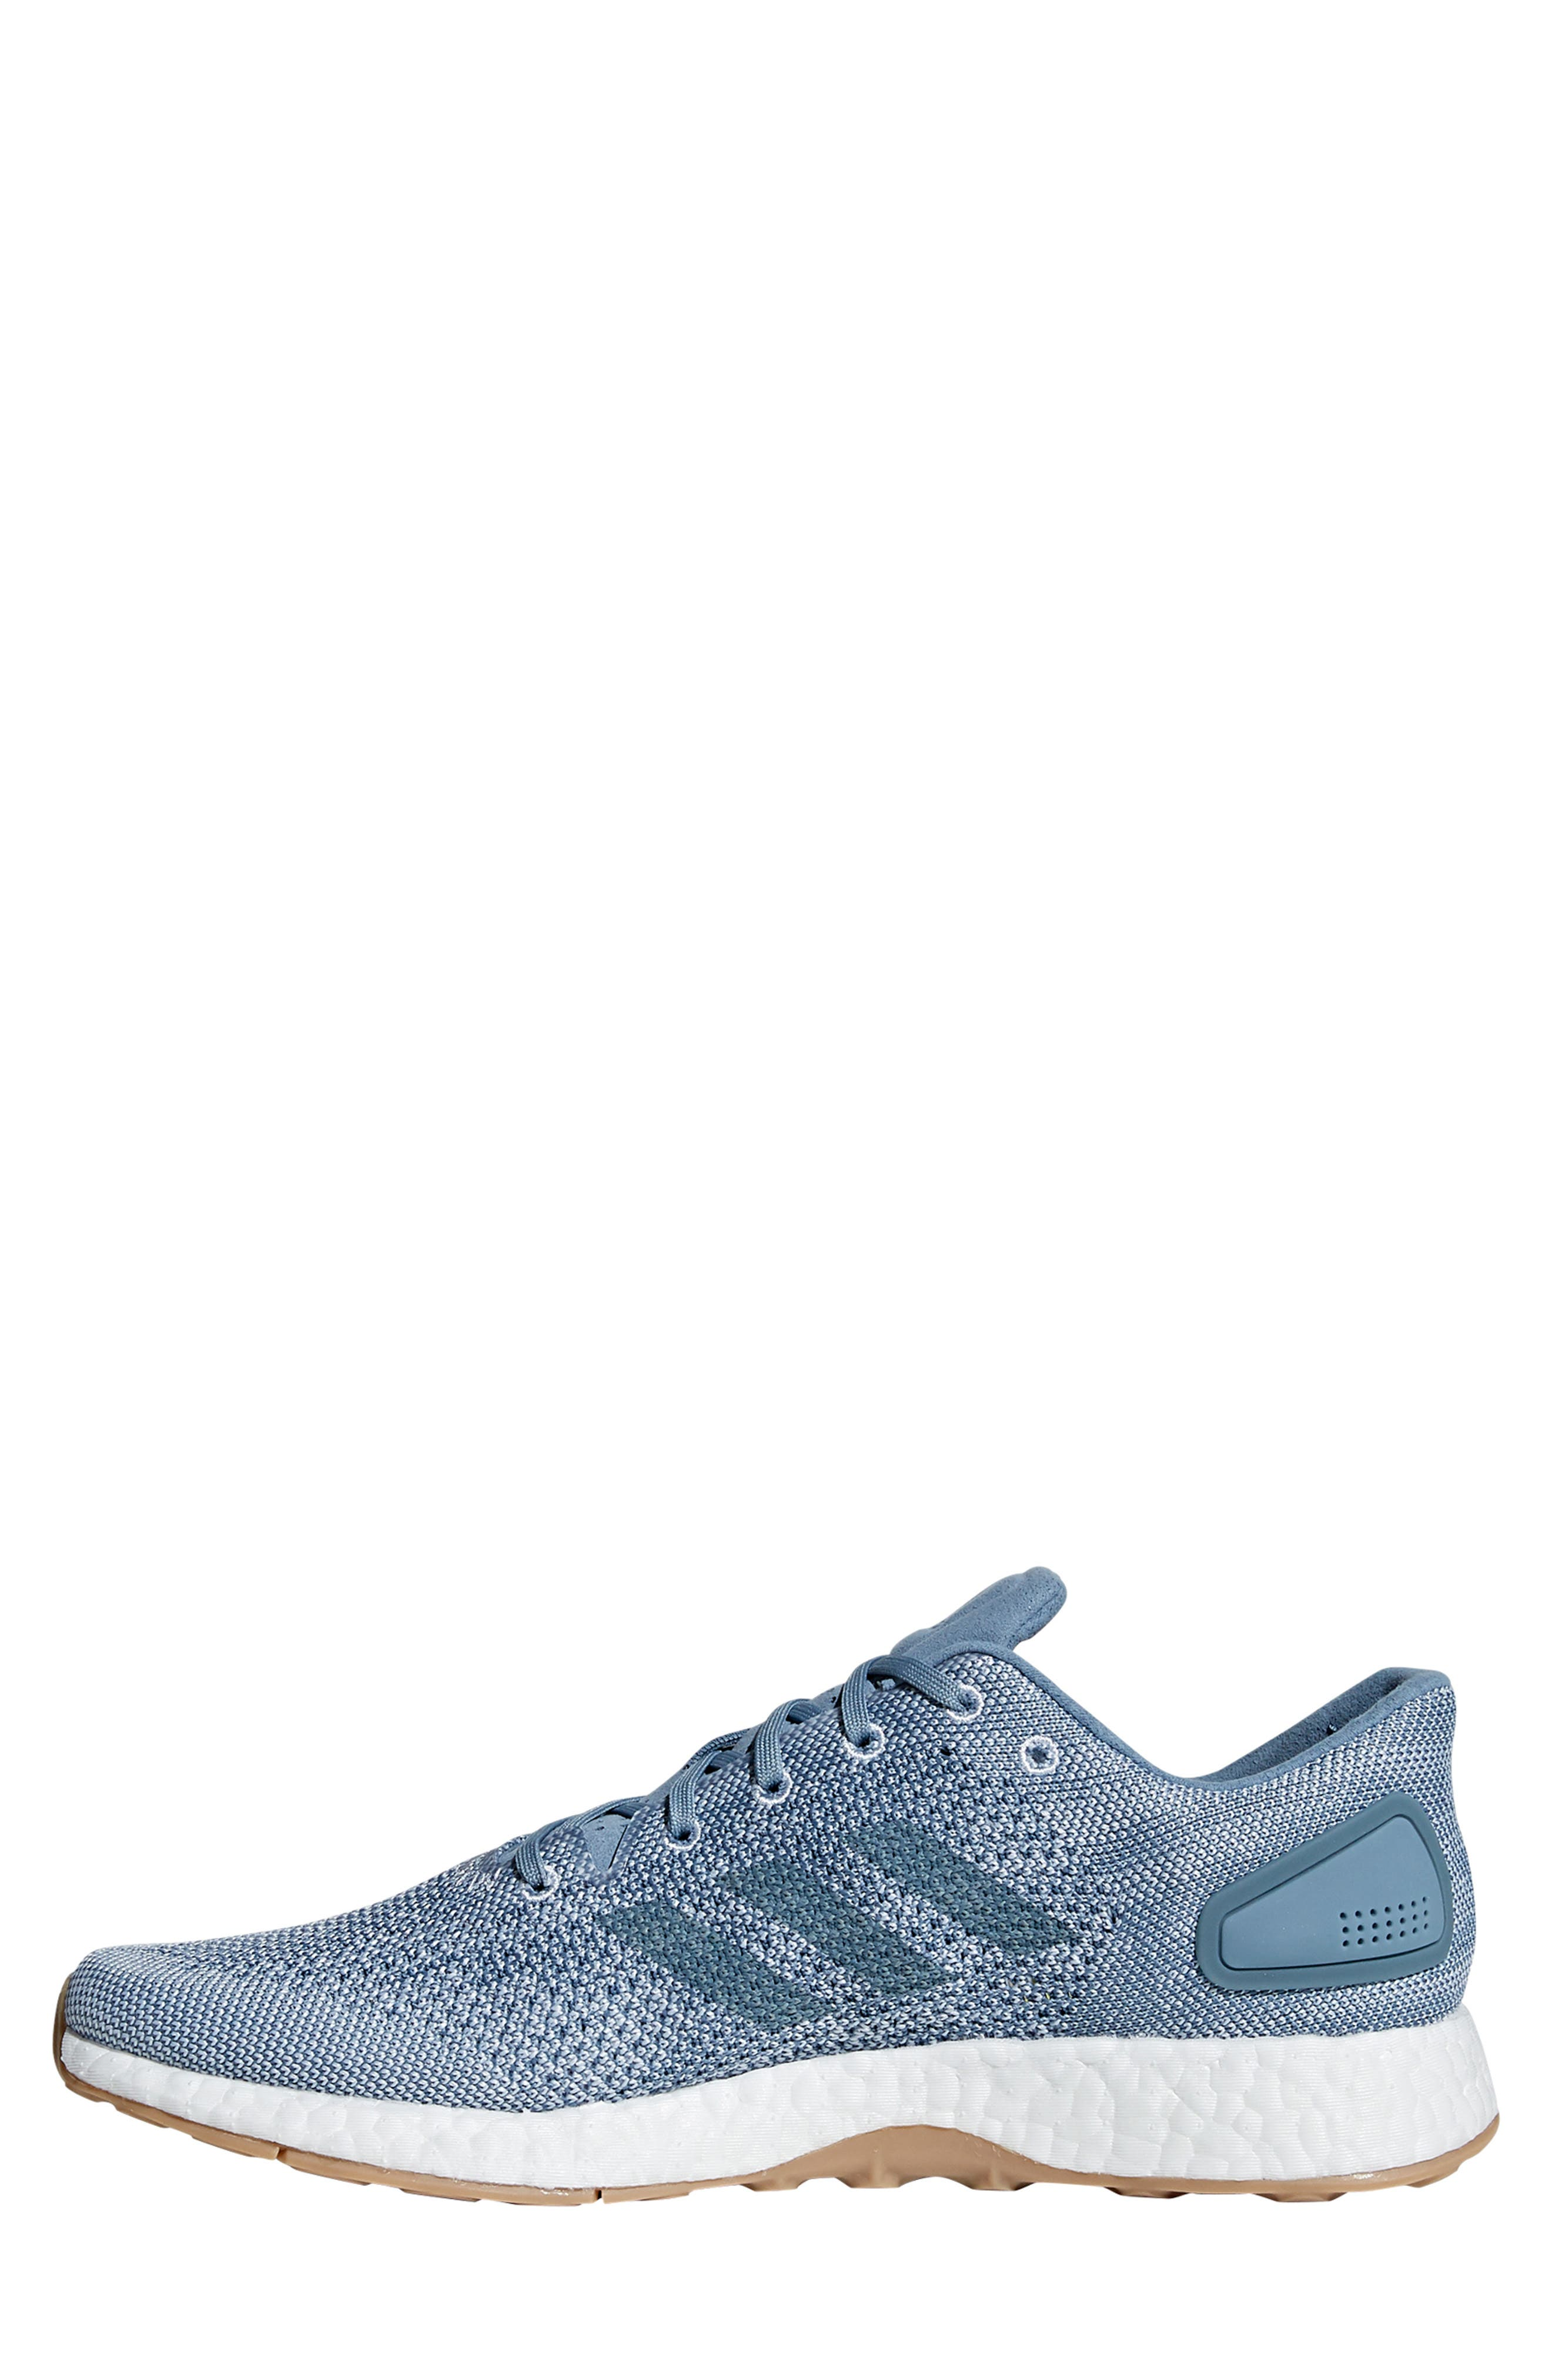 PureBoost DPR Running Shoe,                             Alternate thumbnail 9, color,                             360